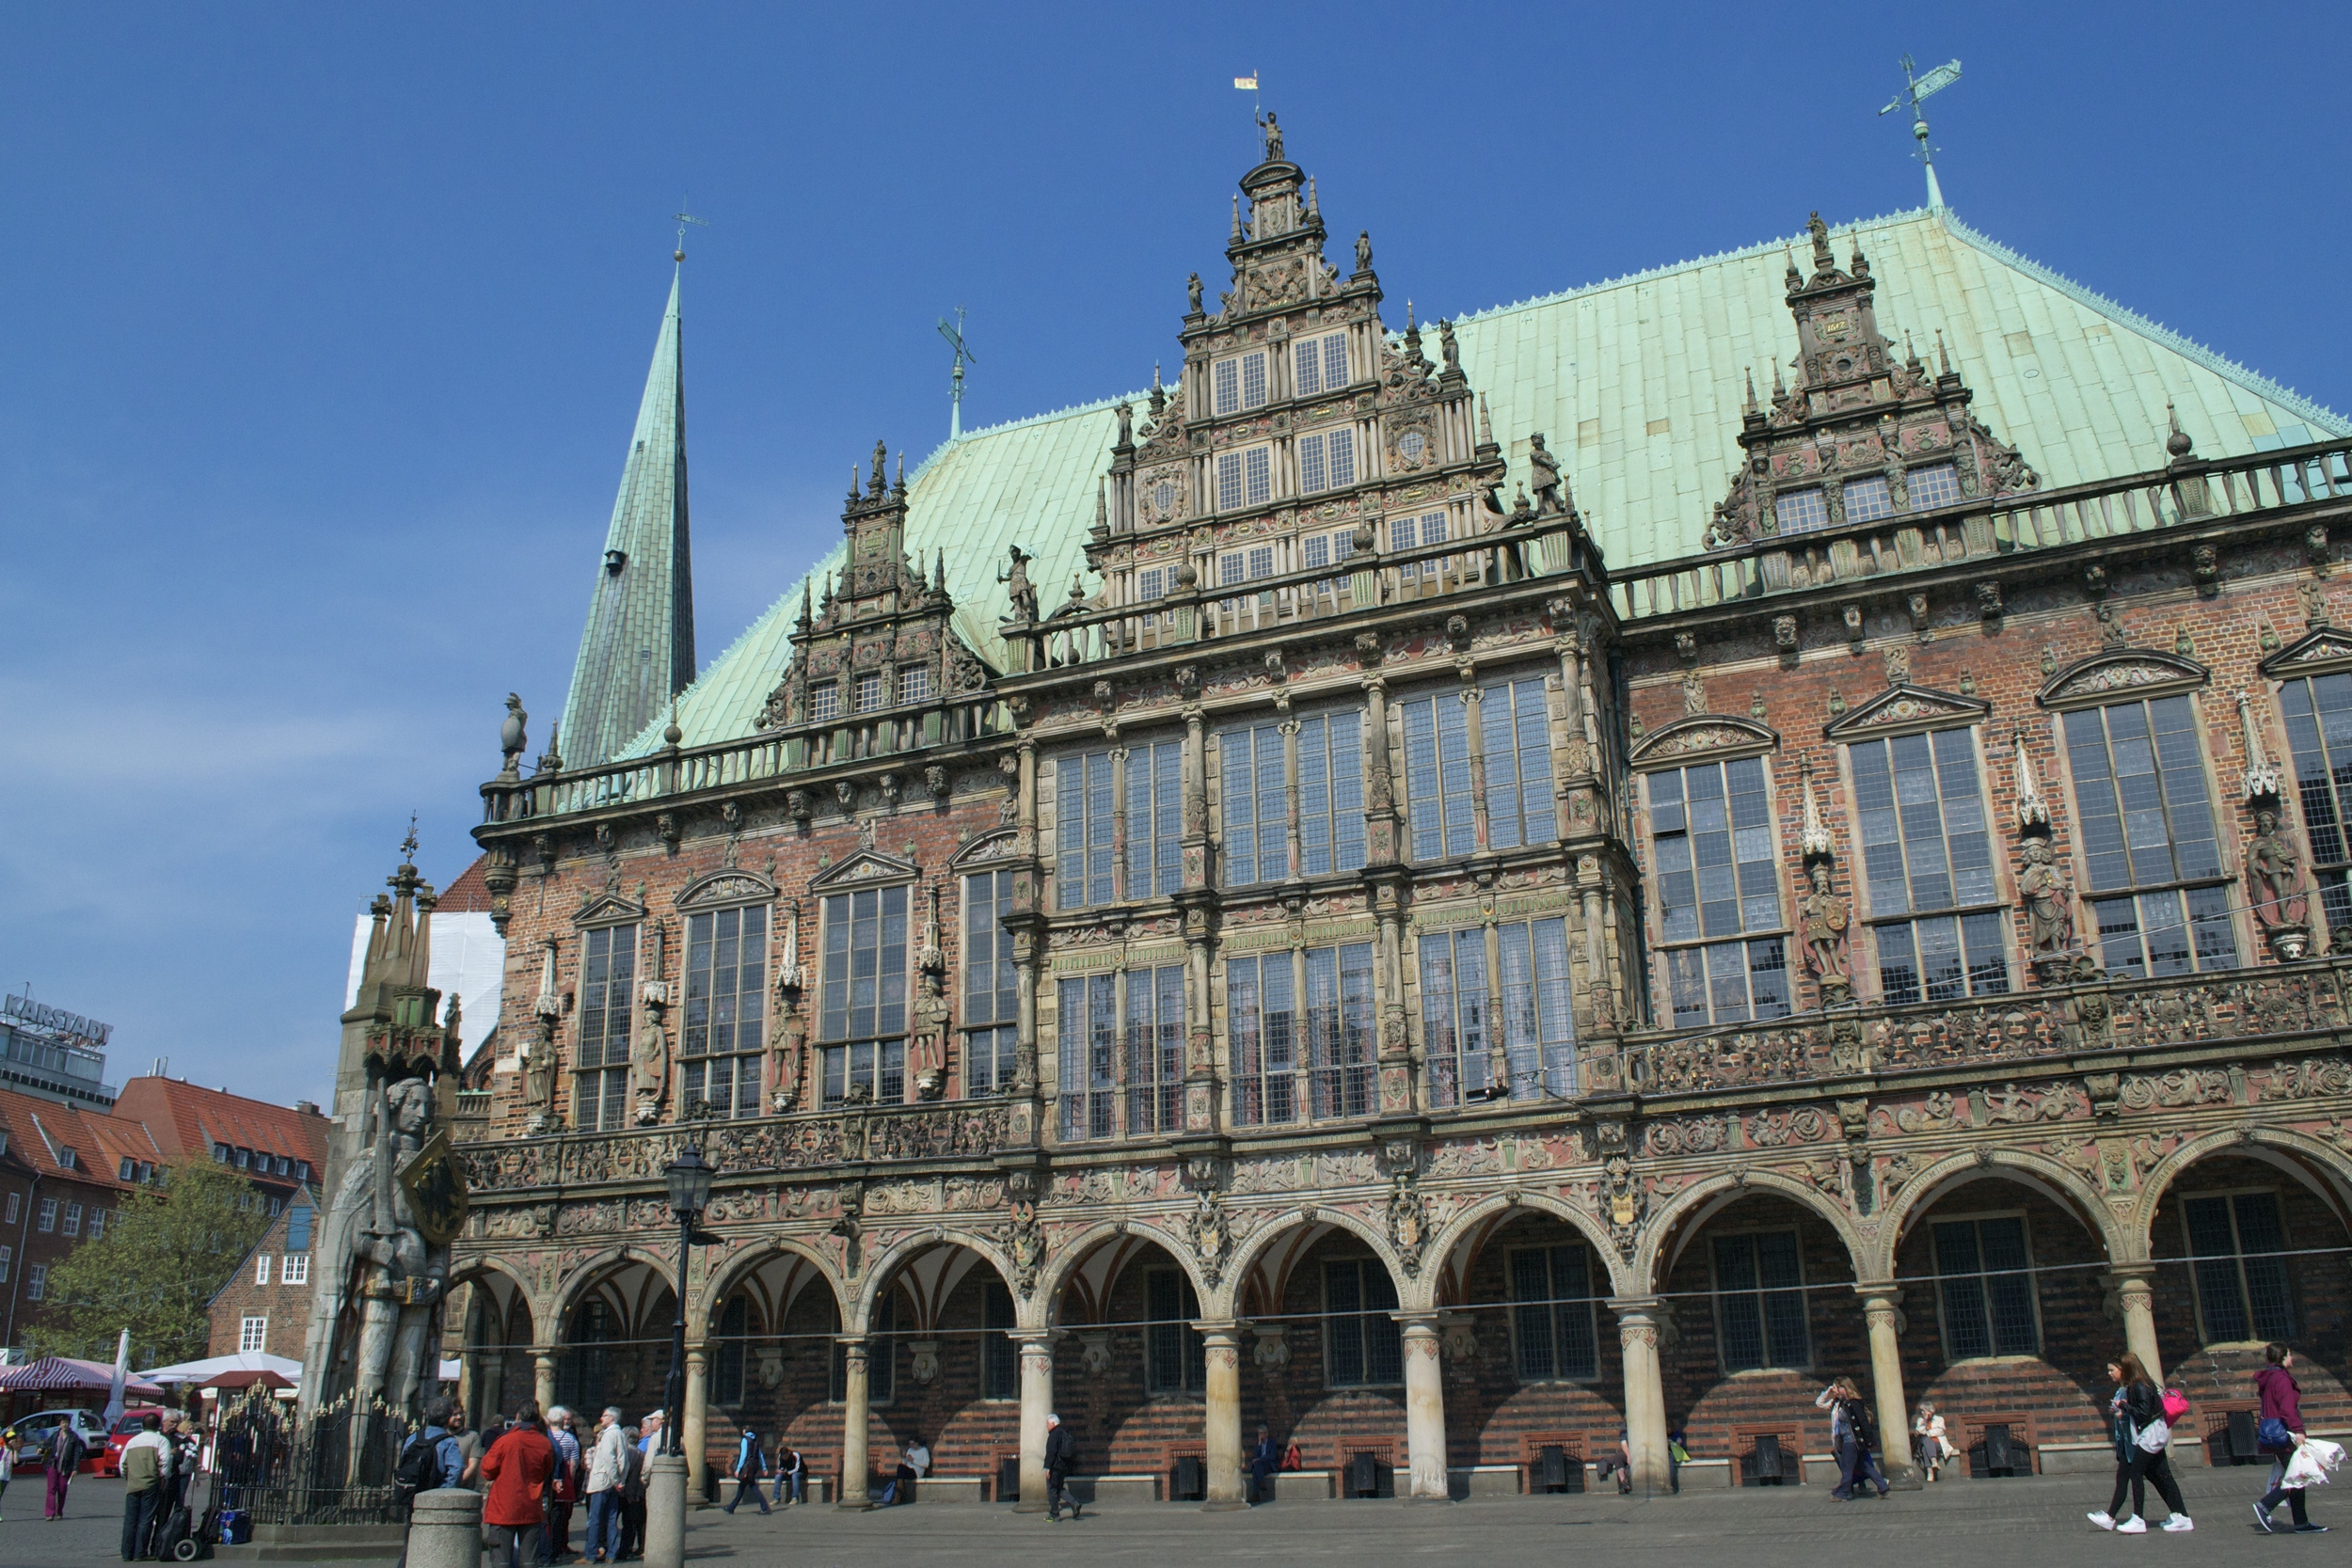 The Bremer Rathaus, with the Roland statue in front of it.